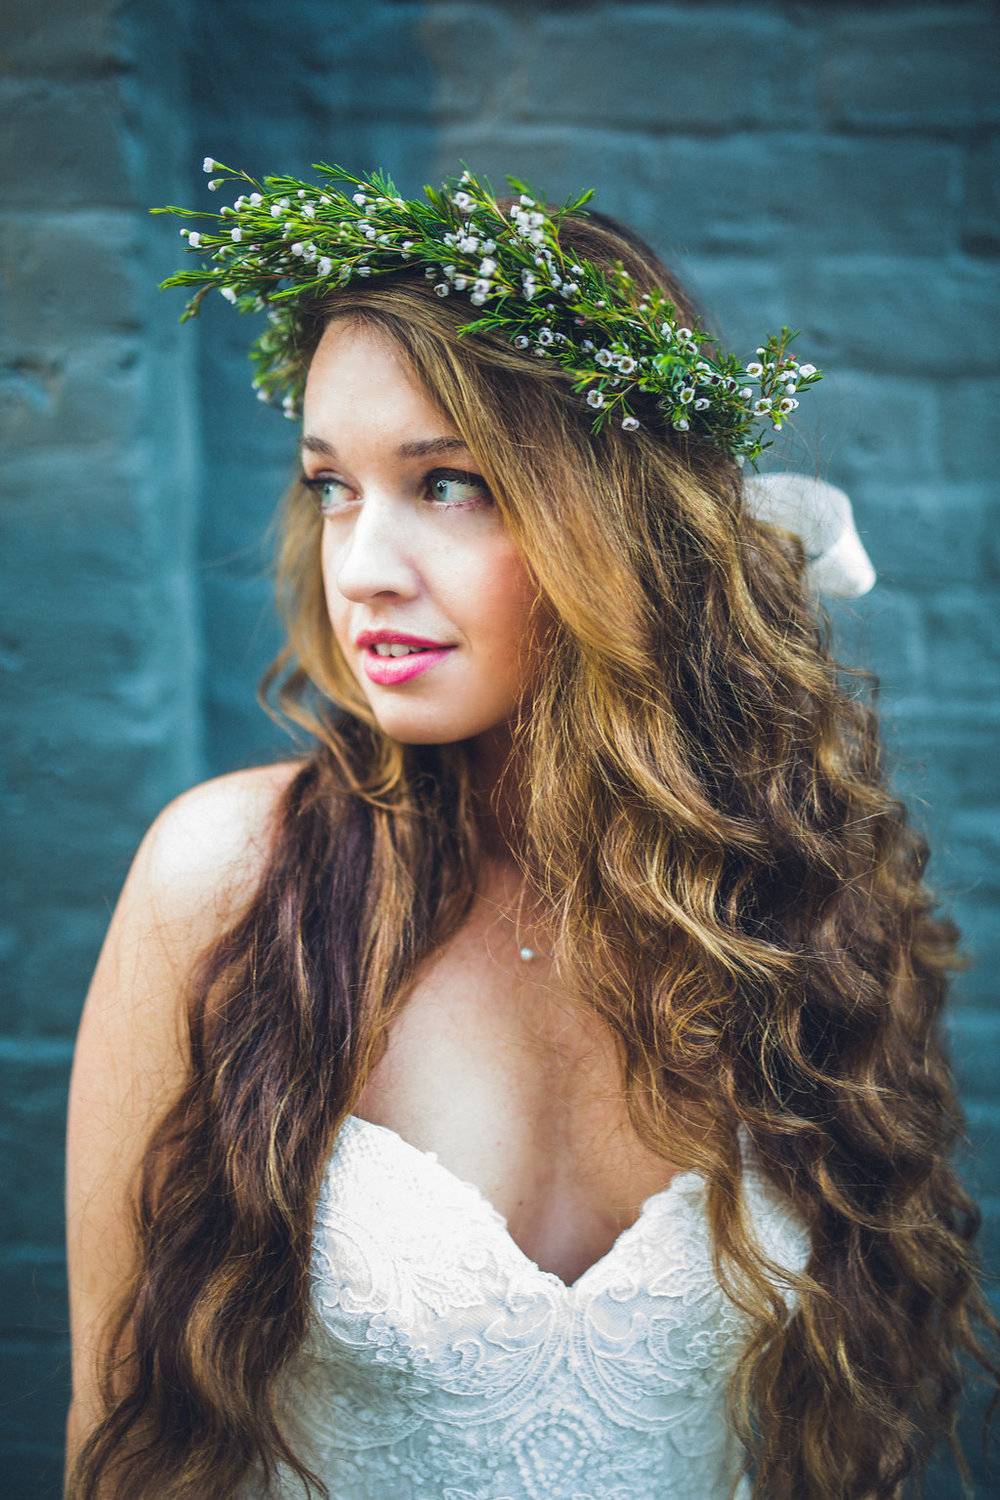 alexis-sweet-photography-ivory-and-beau-bridal-boutique-mirelle--maggie-sottero-rebecca-ingram-lace-mermaid-savannah-wedding-savannah-square-wedding-flower-crown-boho-bride-savannah-wedding-planner-savannah-bridal-boutique-savannah-florist-15.jpg